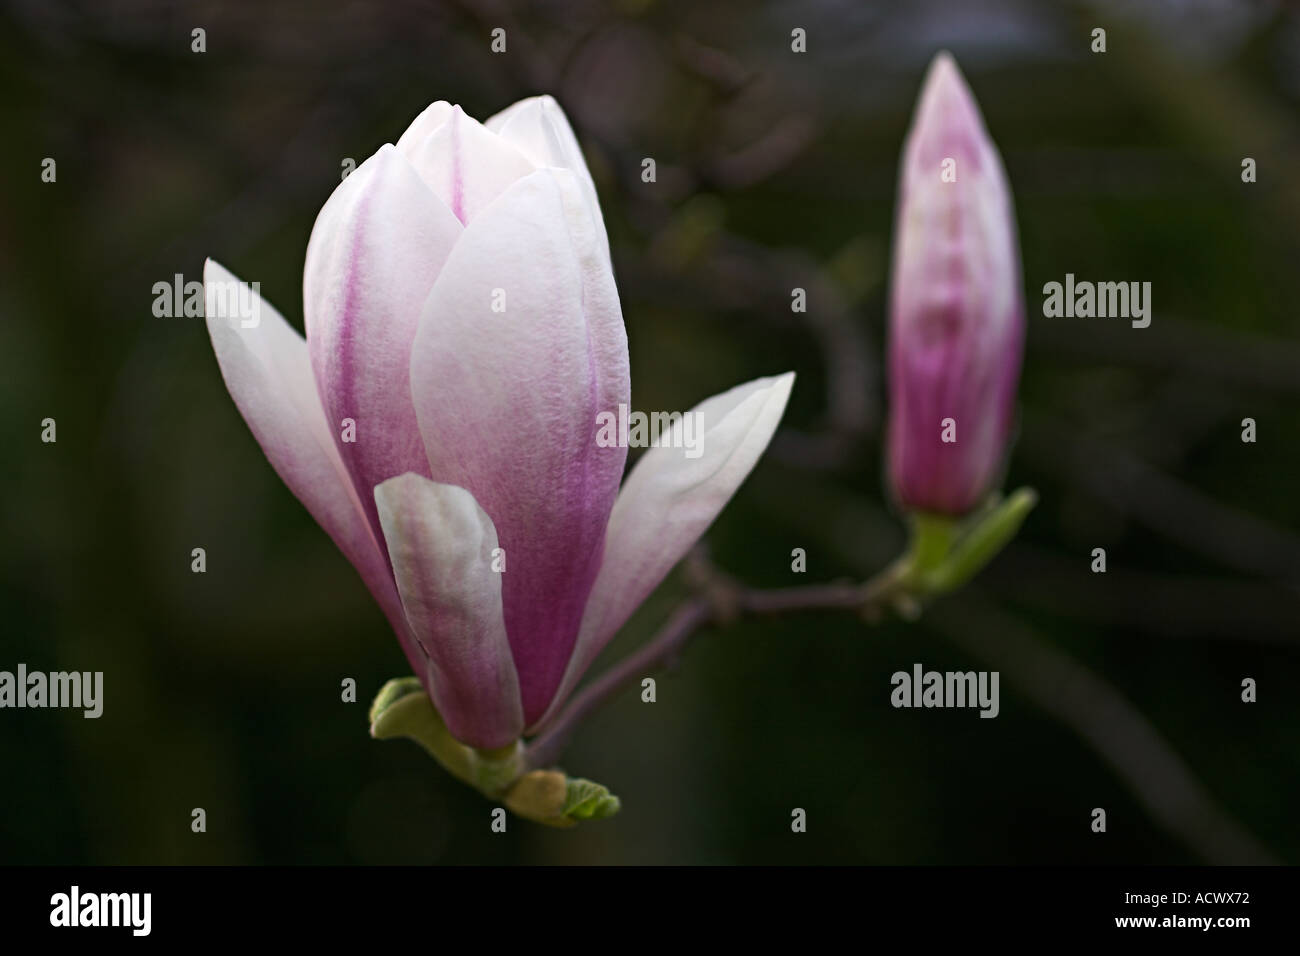 Image Of A Magnolia Tree With Large Fragrant Pink Flowers And Leaves